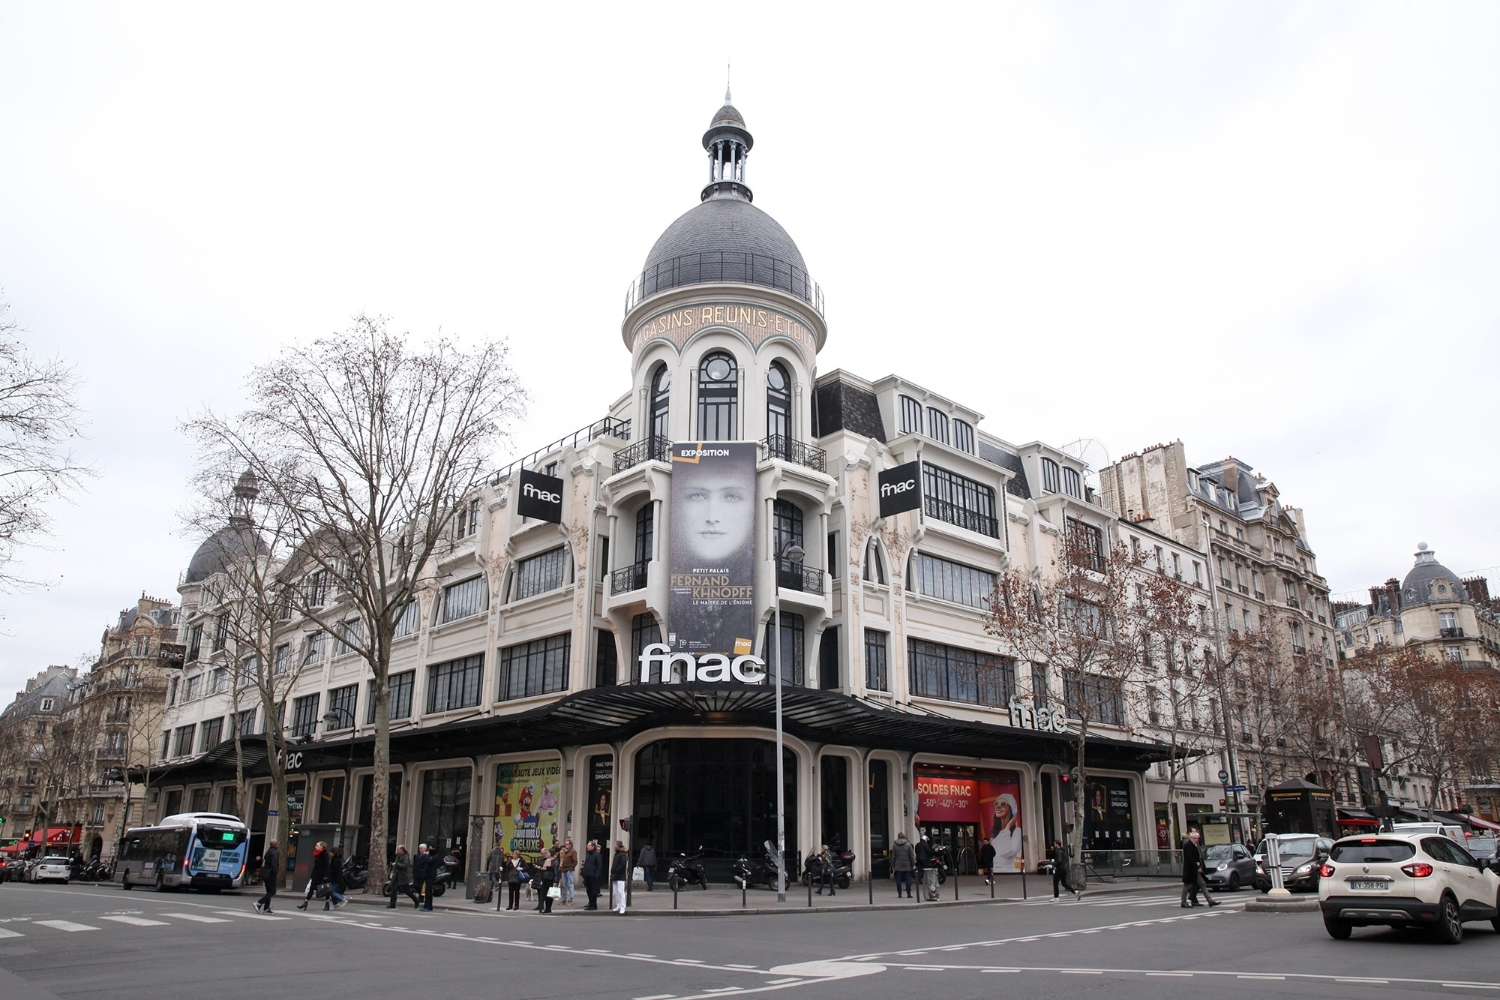 The Fnac des Ternes building is part of the property concerned by the dispute.